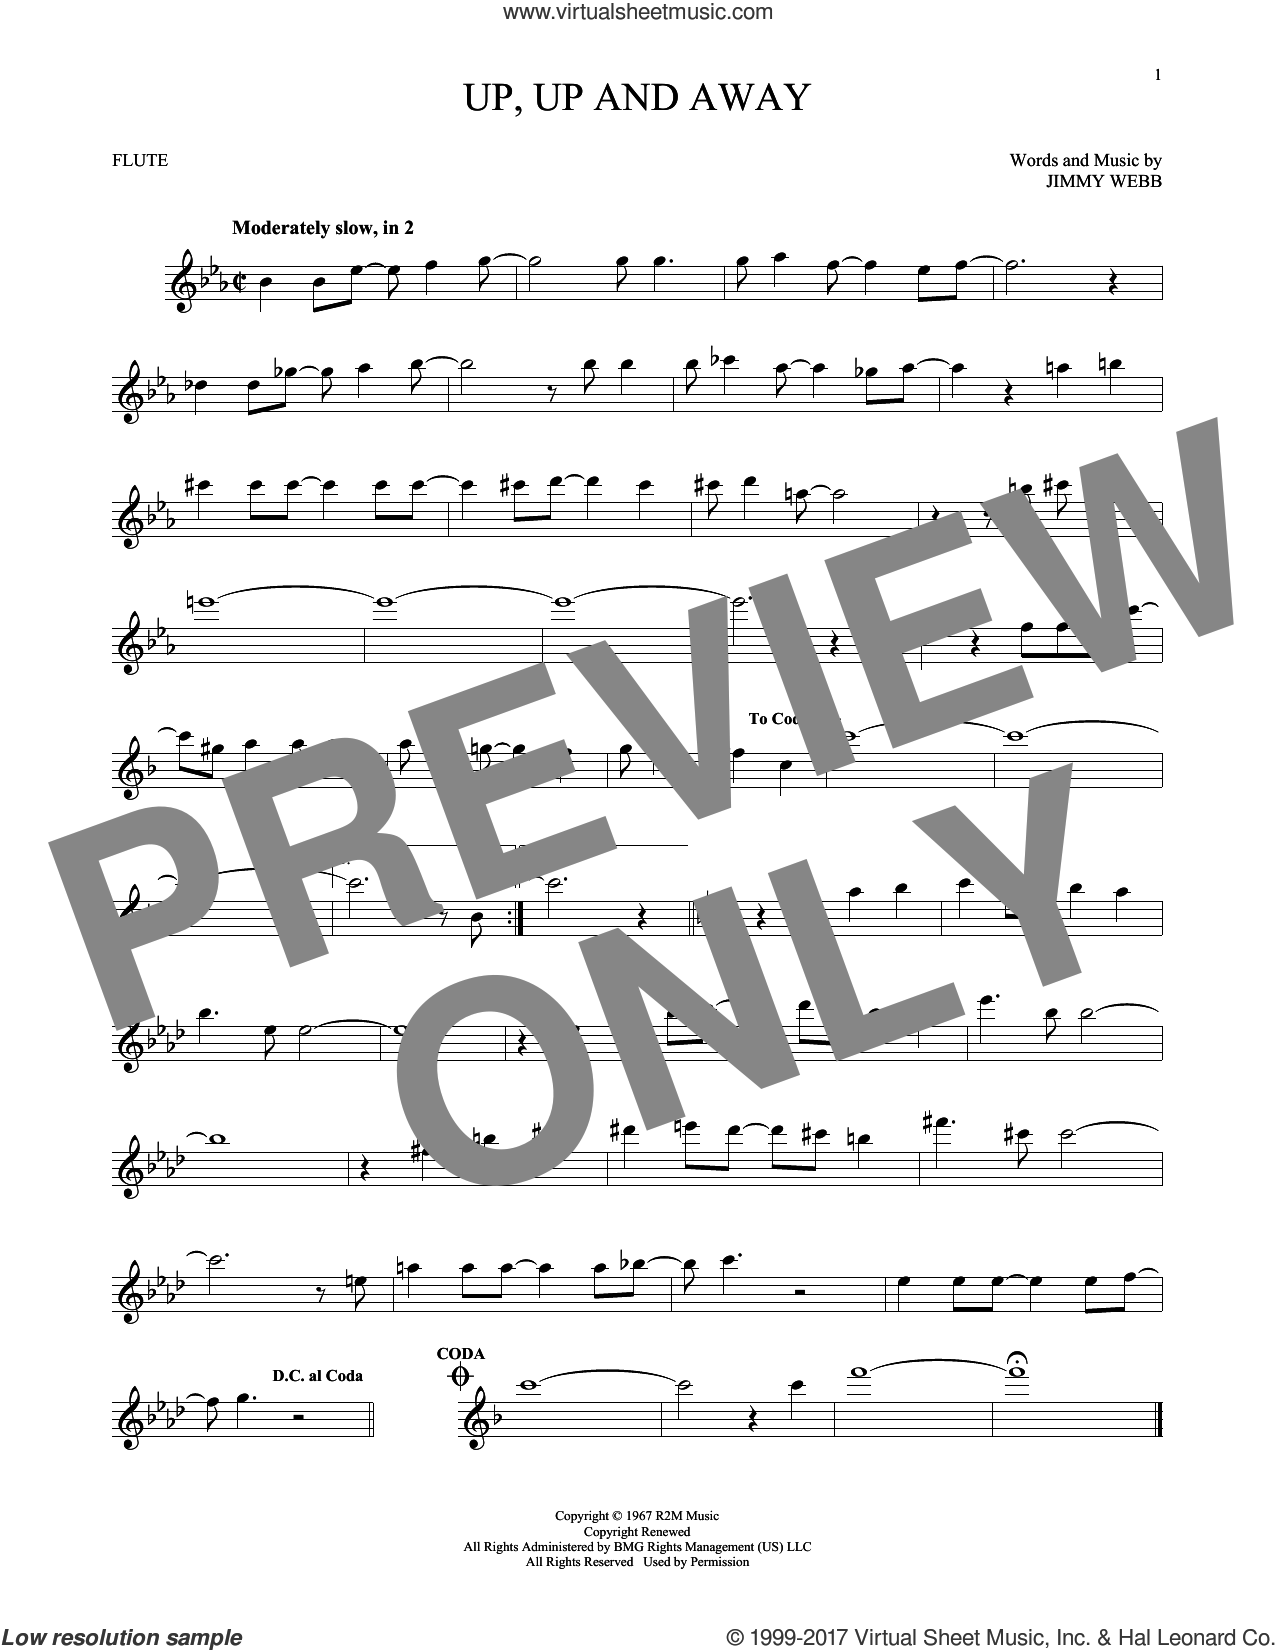 Up, Up And Away sheet music for flute solo by The Fifth Dimension and Jimmy Webb, intermediate skill level